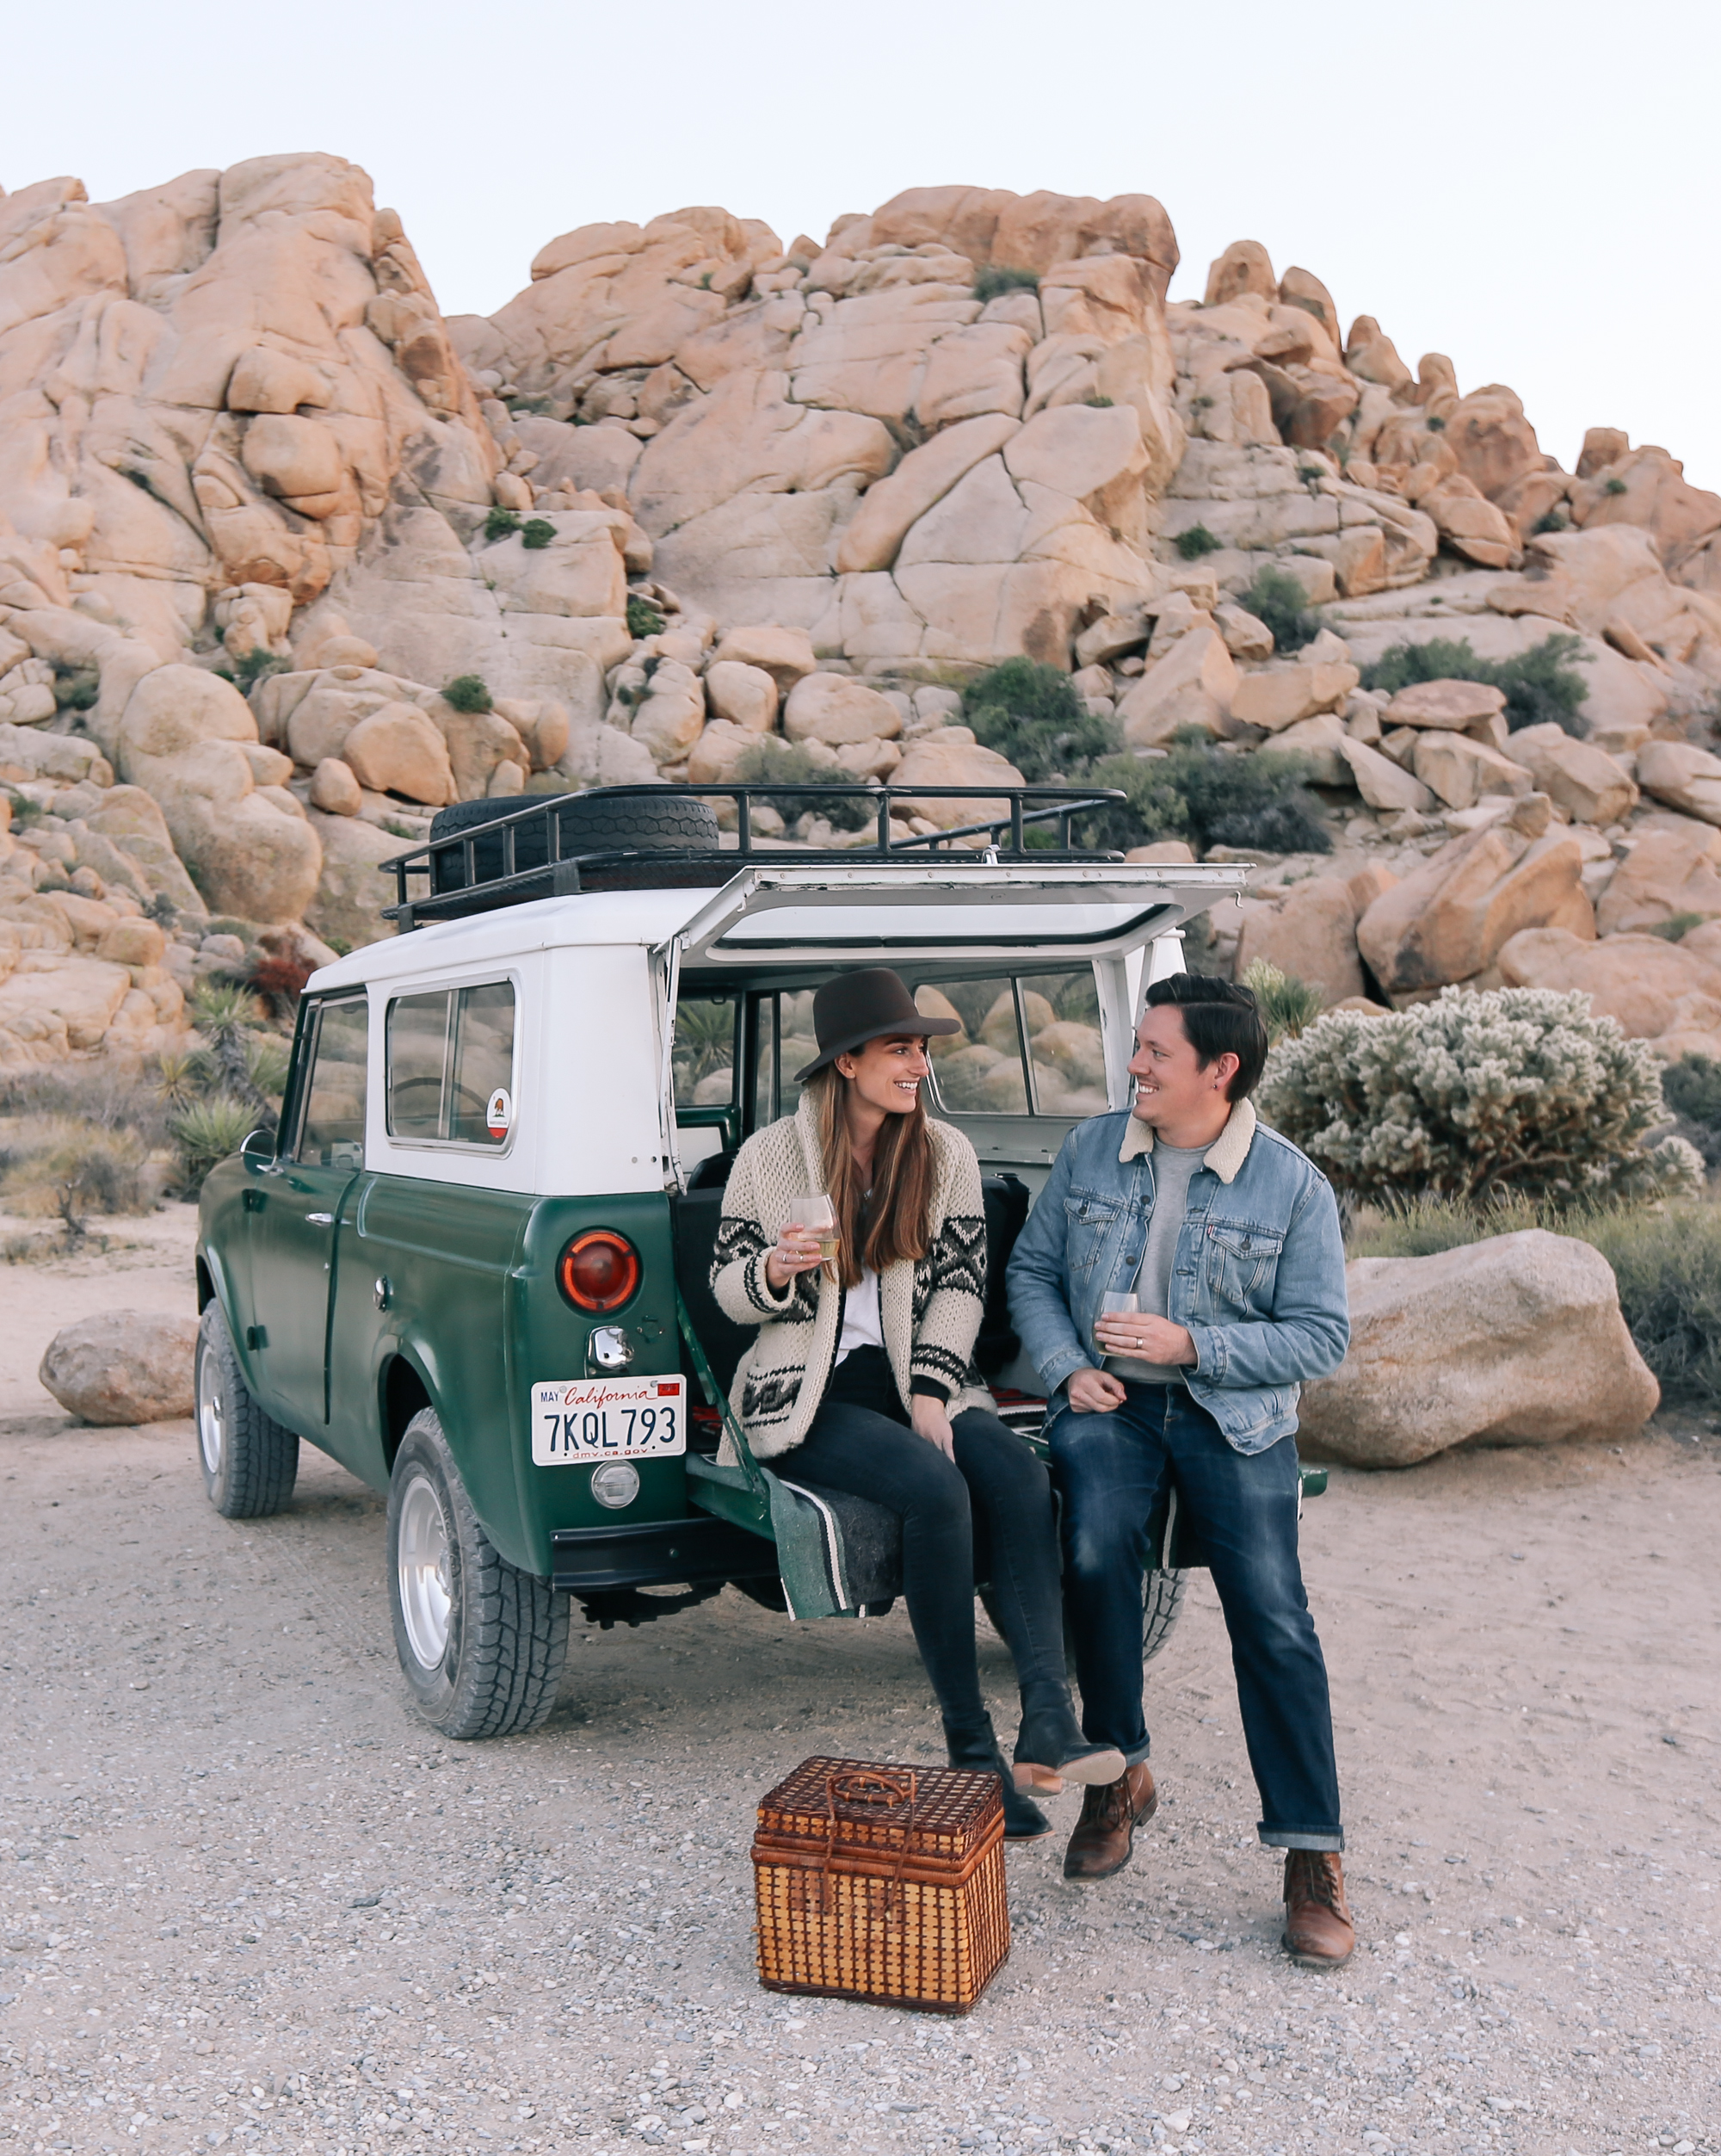 Picnic at Indian Cove in Joshua Tree National Park